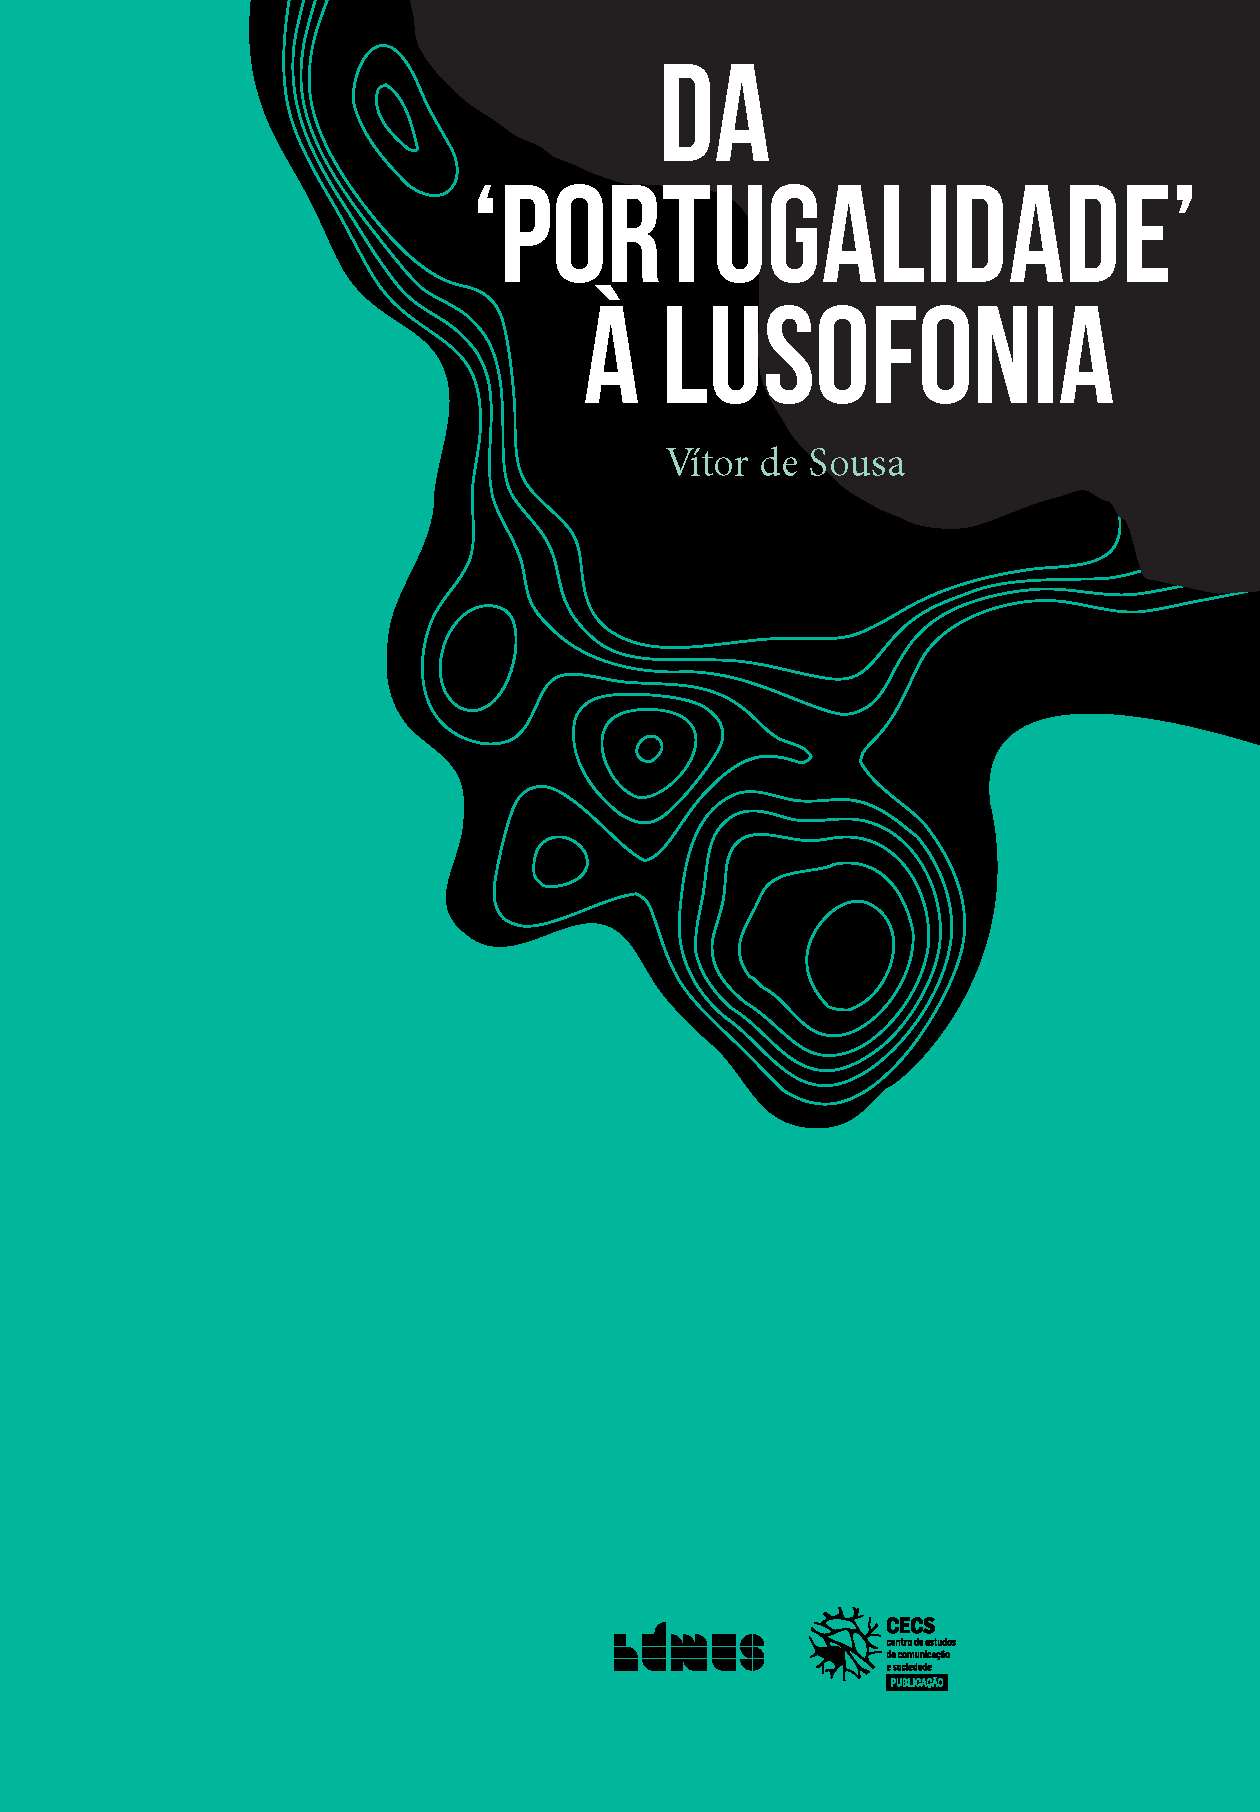 Moisés de Lemos Martins and Francisco Azevedo Mendes will present the book 'Portugality' to Lusofonia